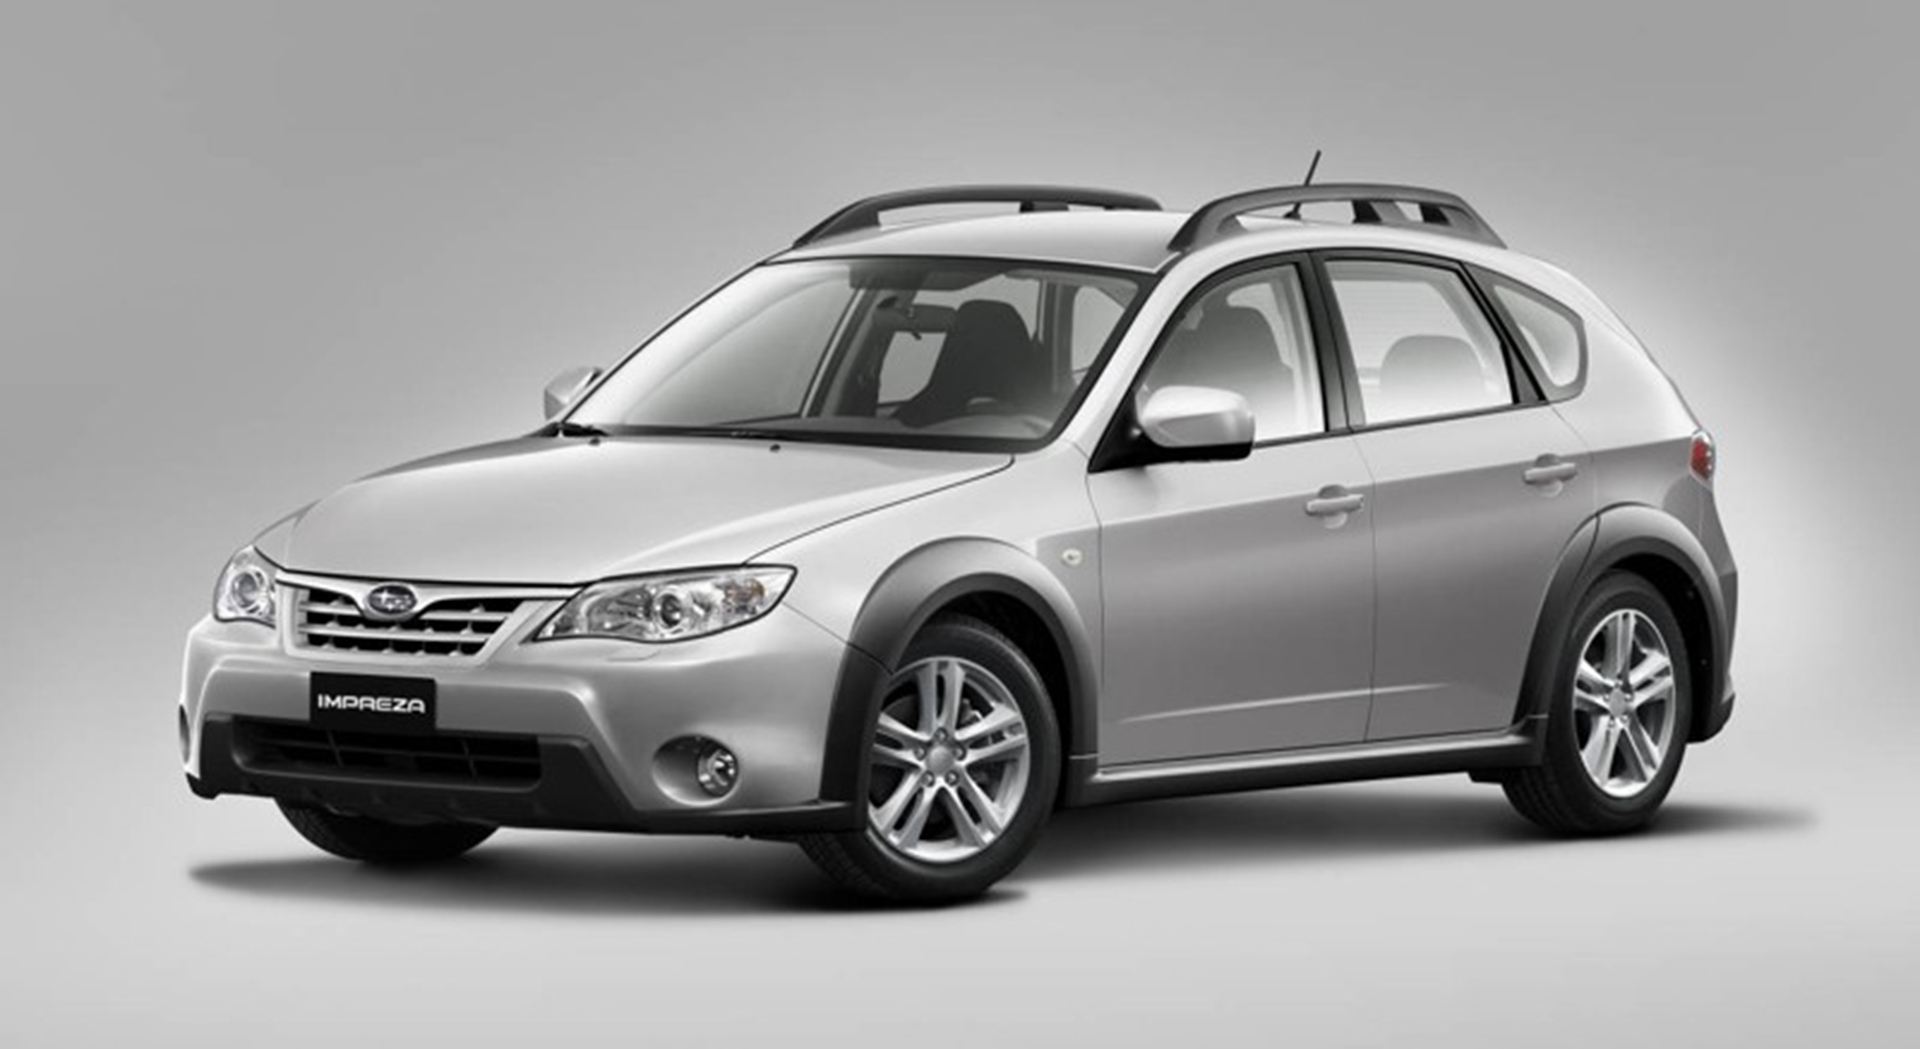 The Subaru Xv Arrives In Irish Dealer Showrooms Time For Christmas A More Comprehensive And Rigorous Essment System Has Been Implemented Since 2009